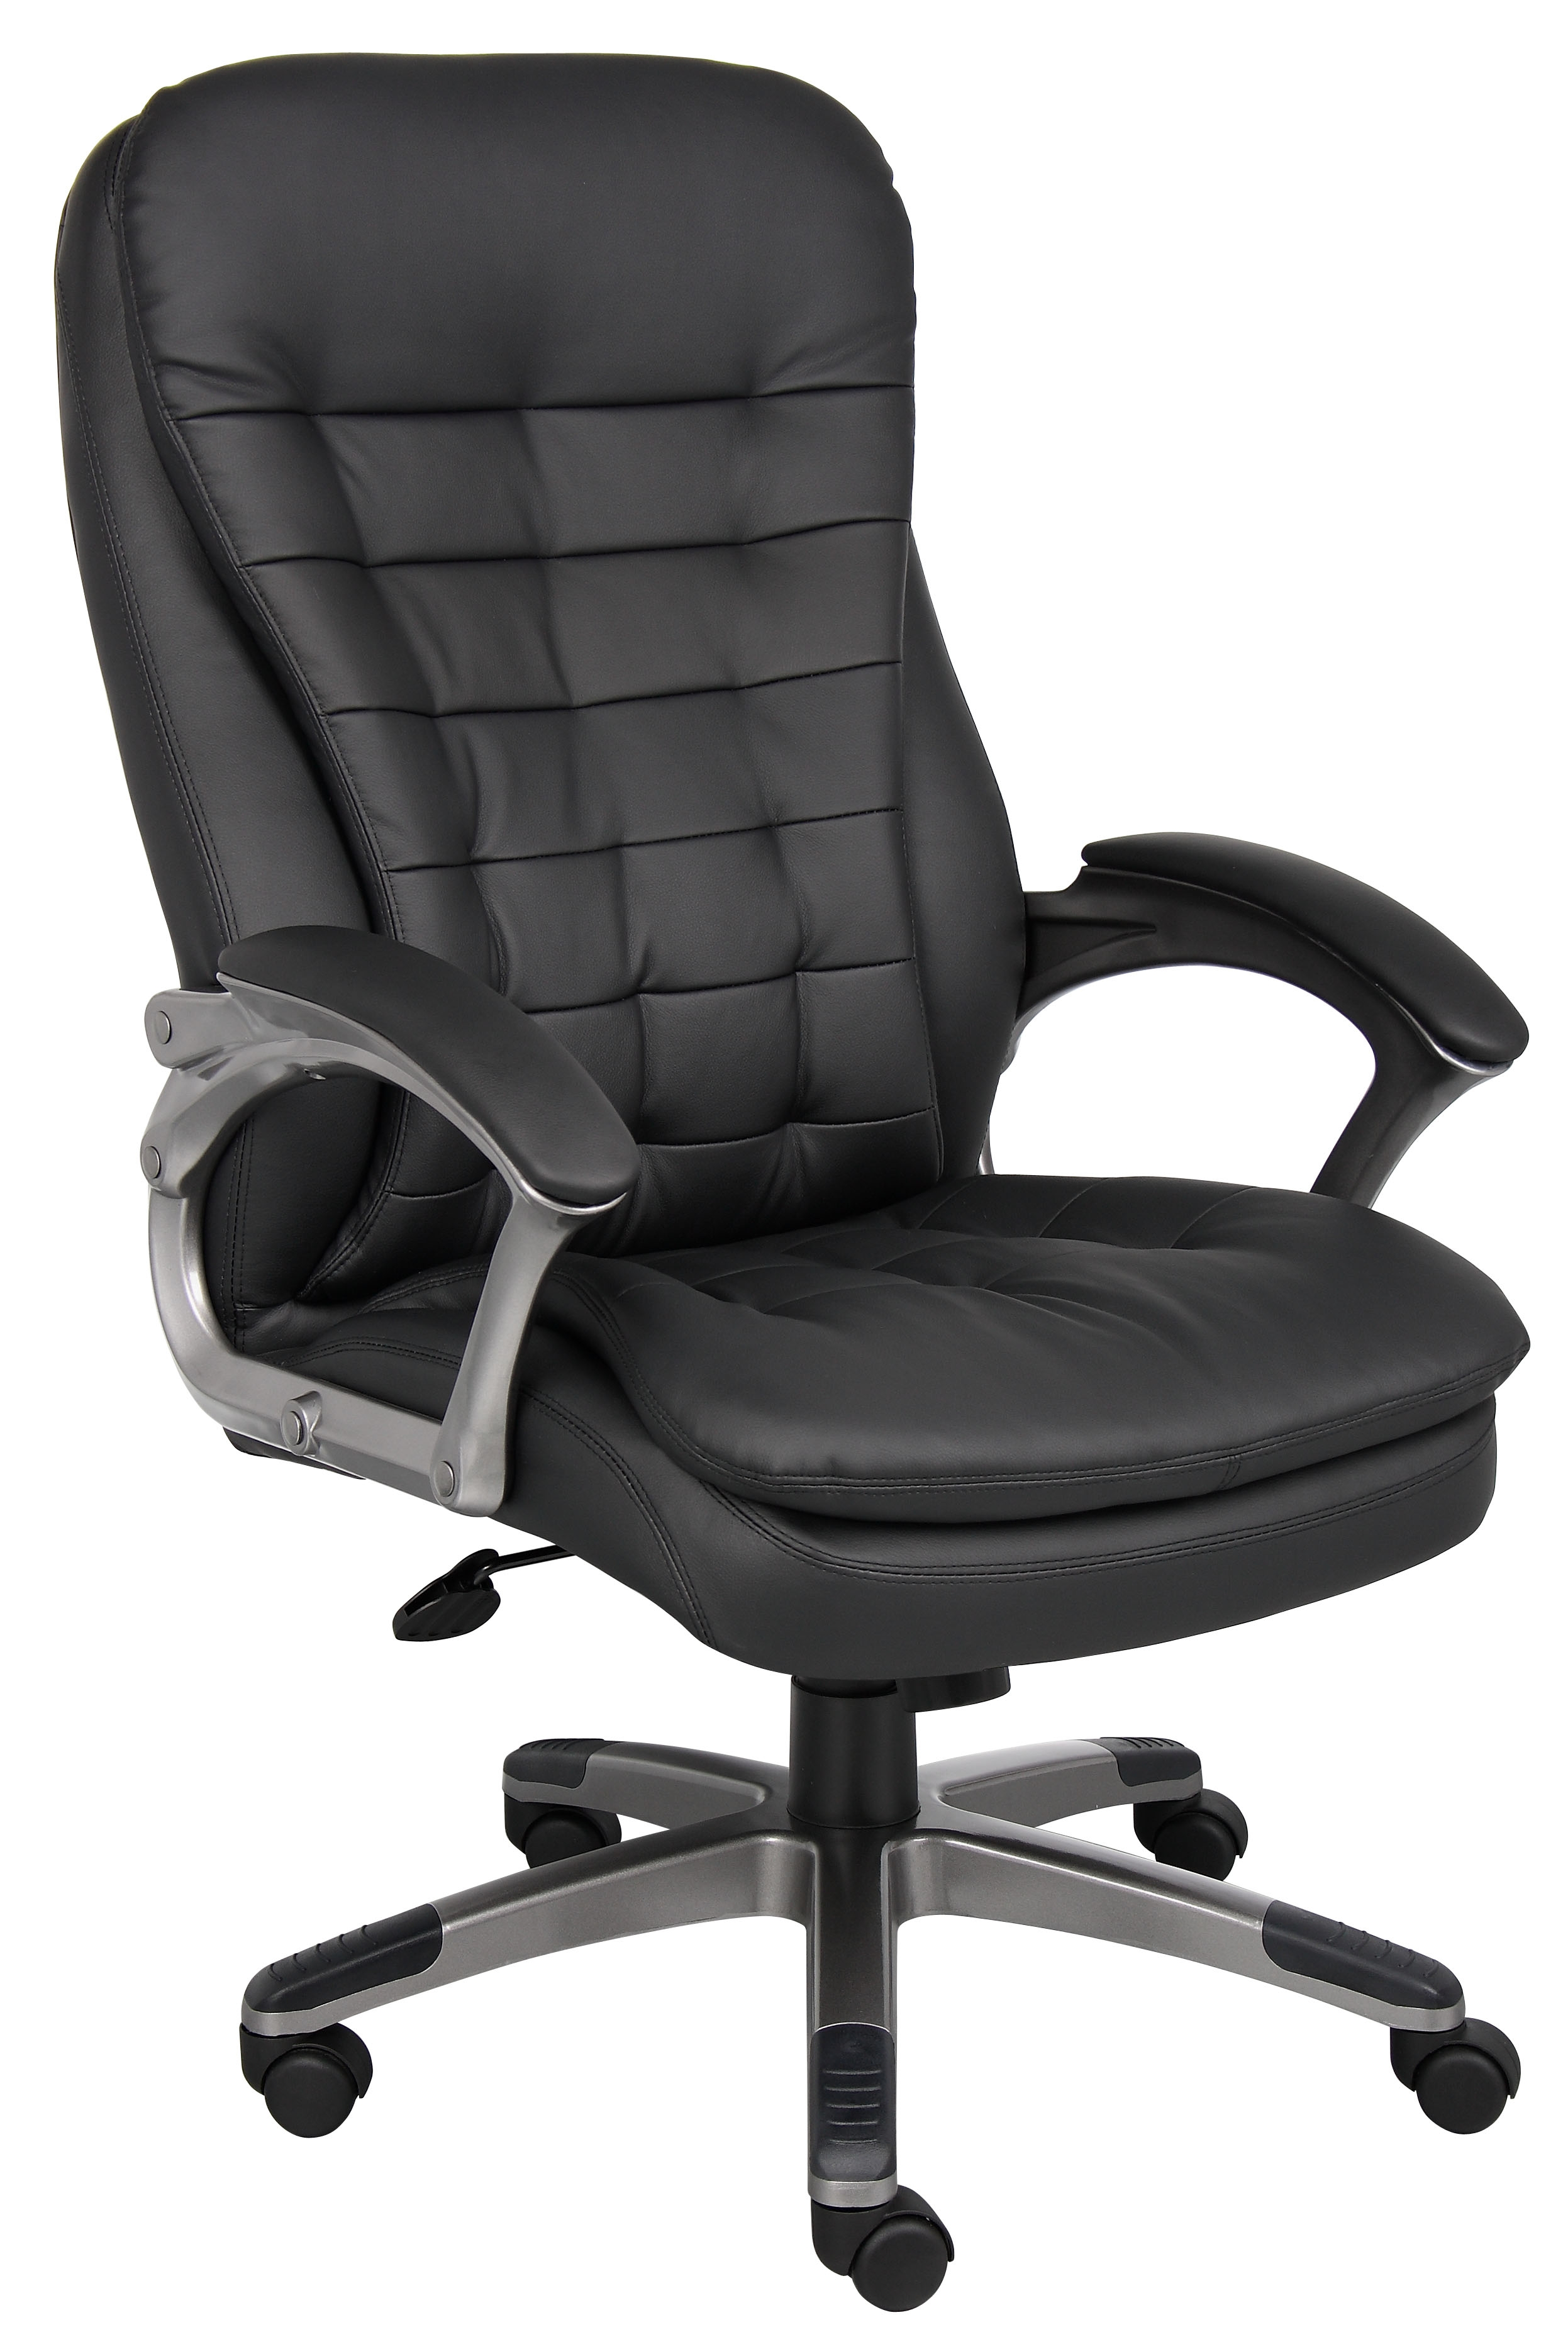 Gentil Boss Office U0026 Home Black High Back Executive Chair